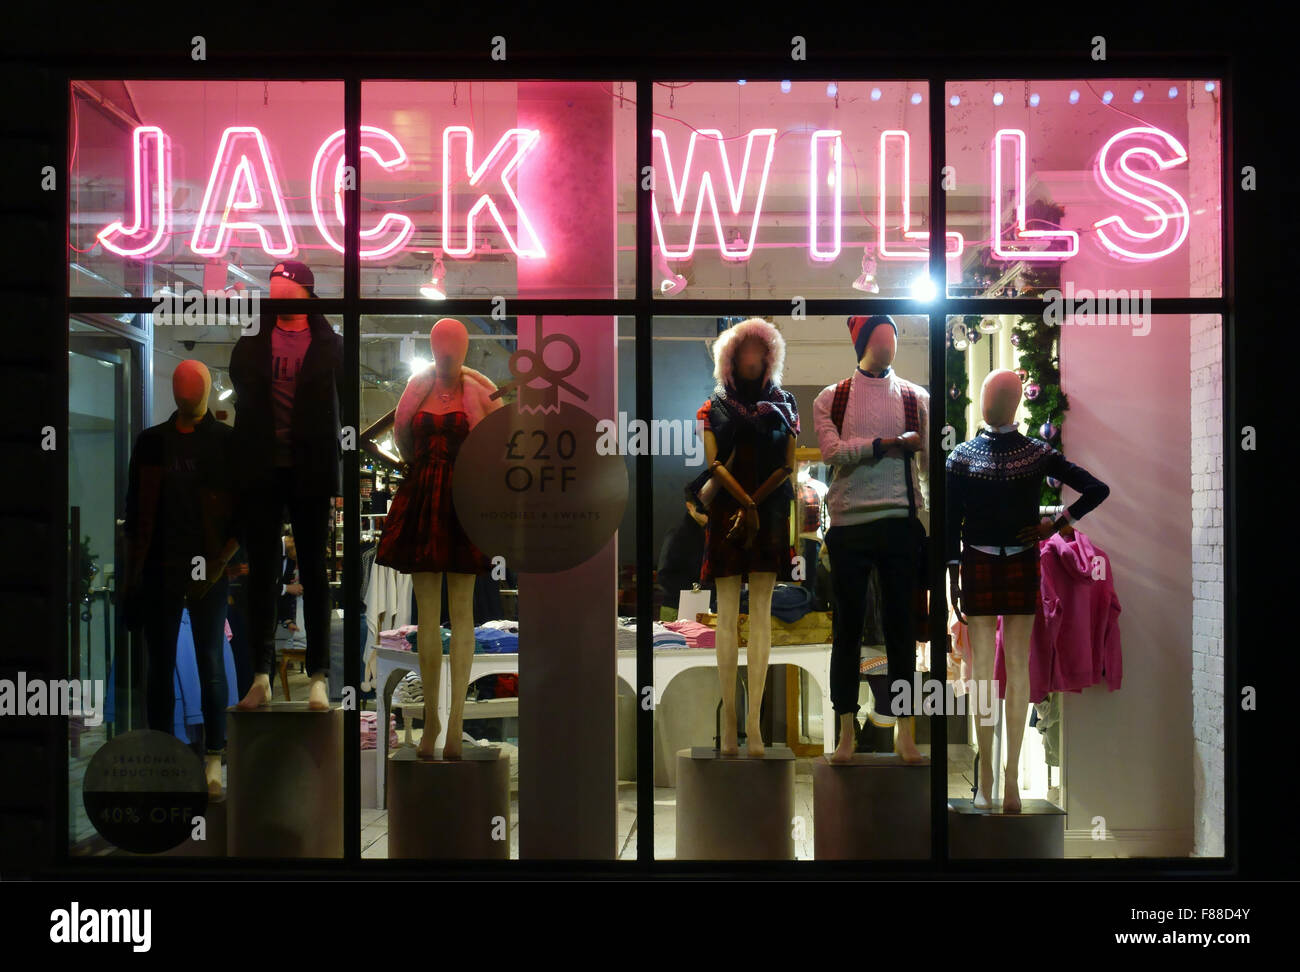 Illuminated Jack Wills shop front Carnaby street London - Stock Image